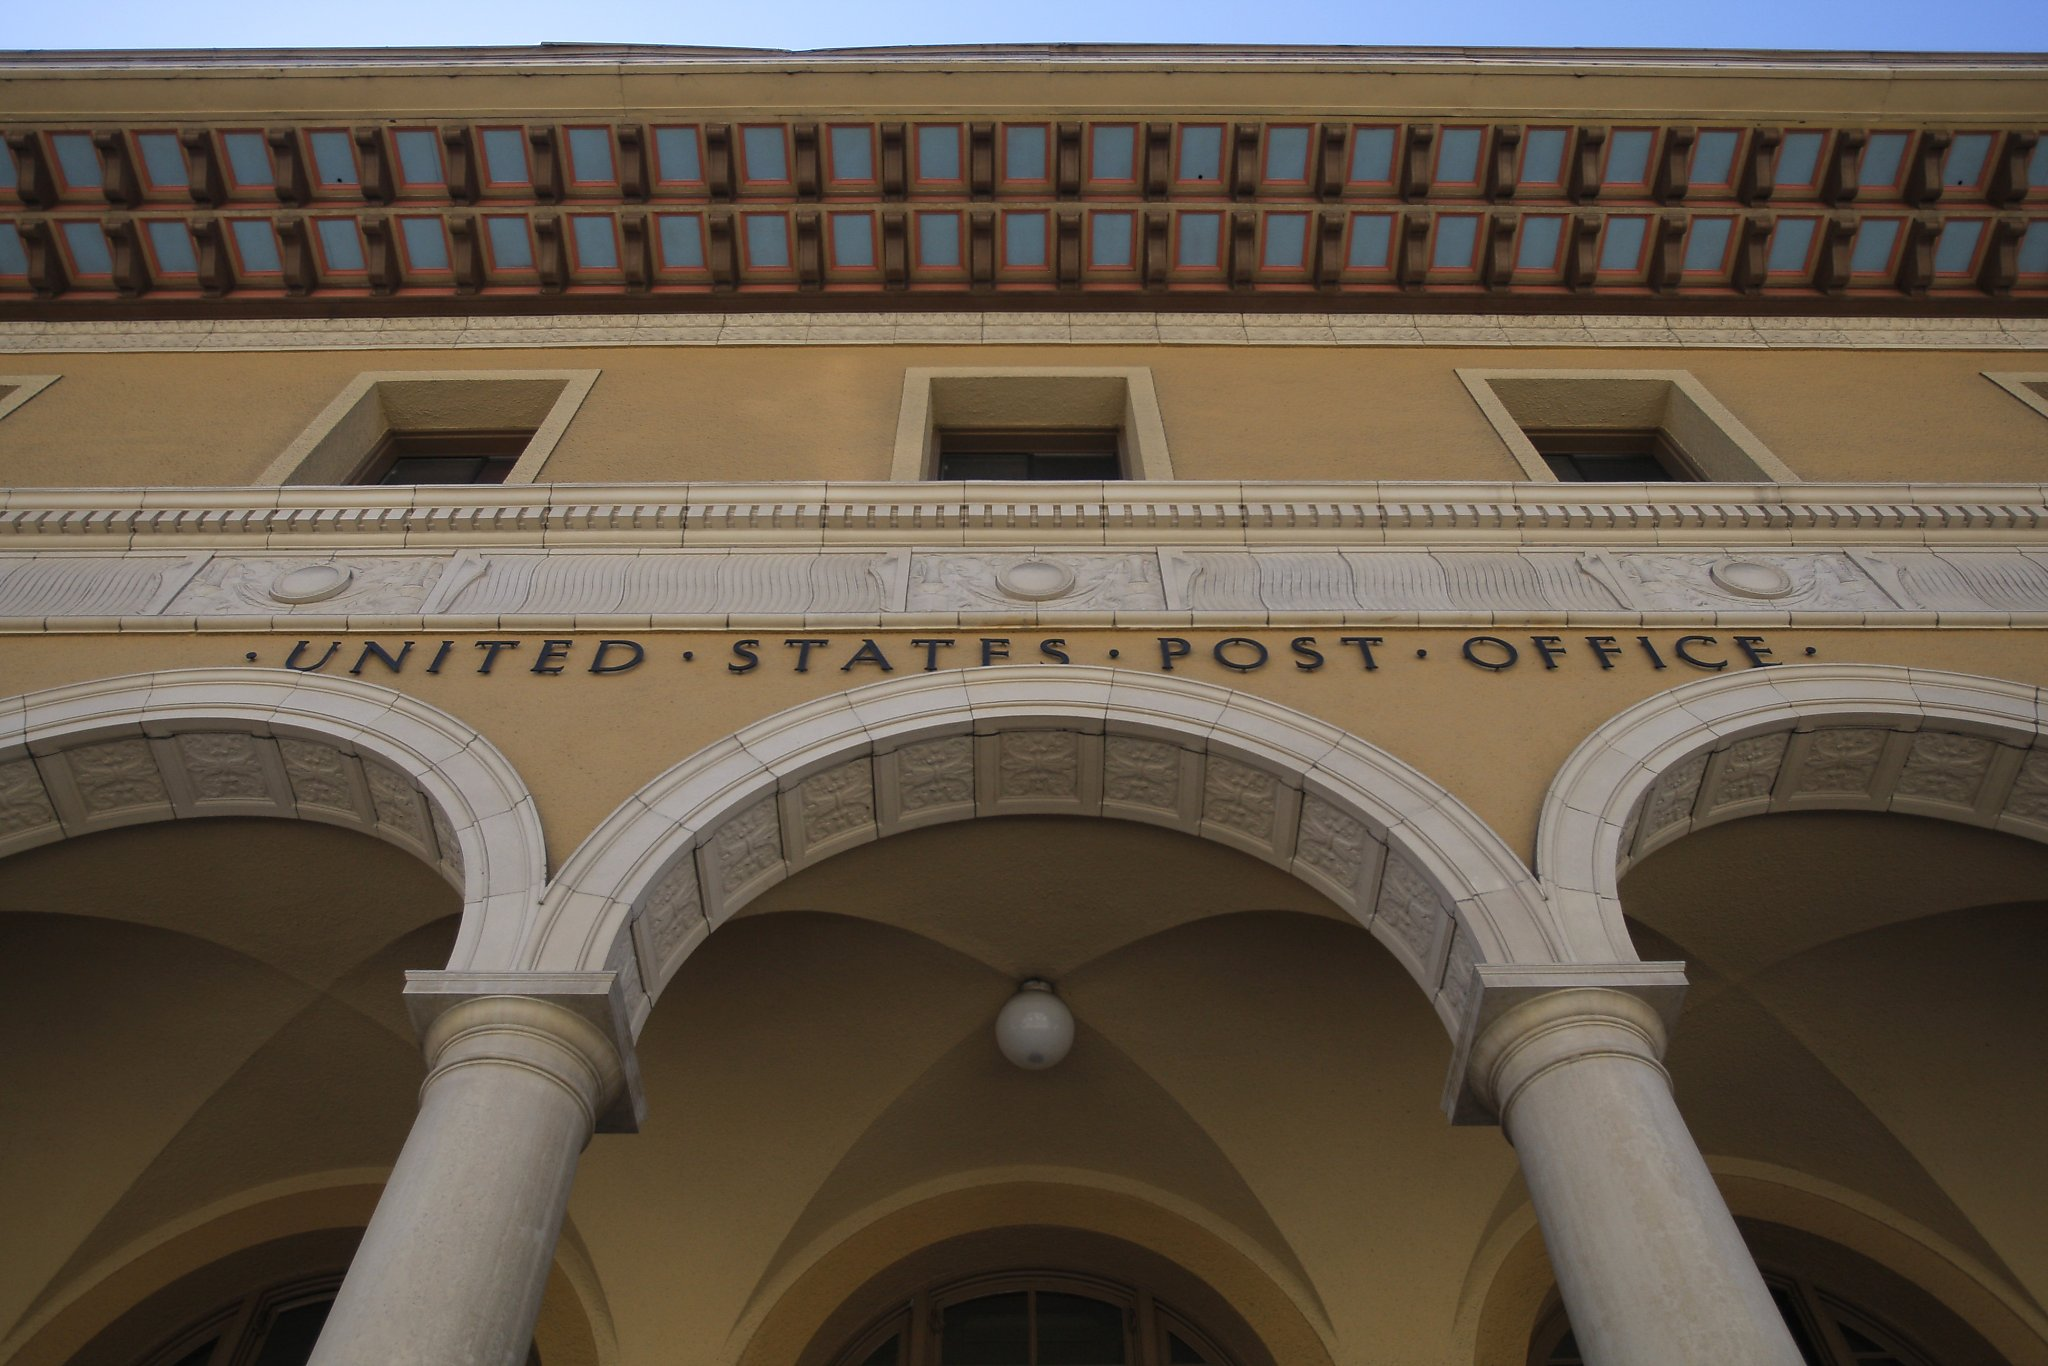 Grim outlook for post office buildings SFGate